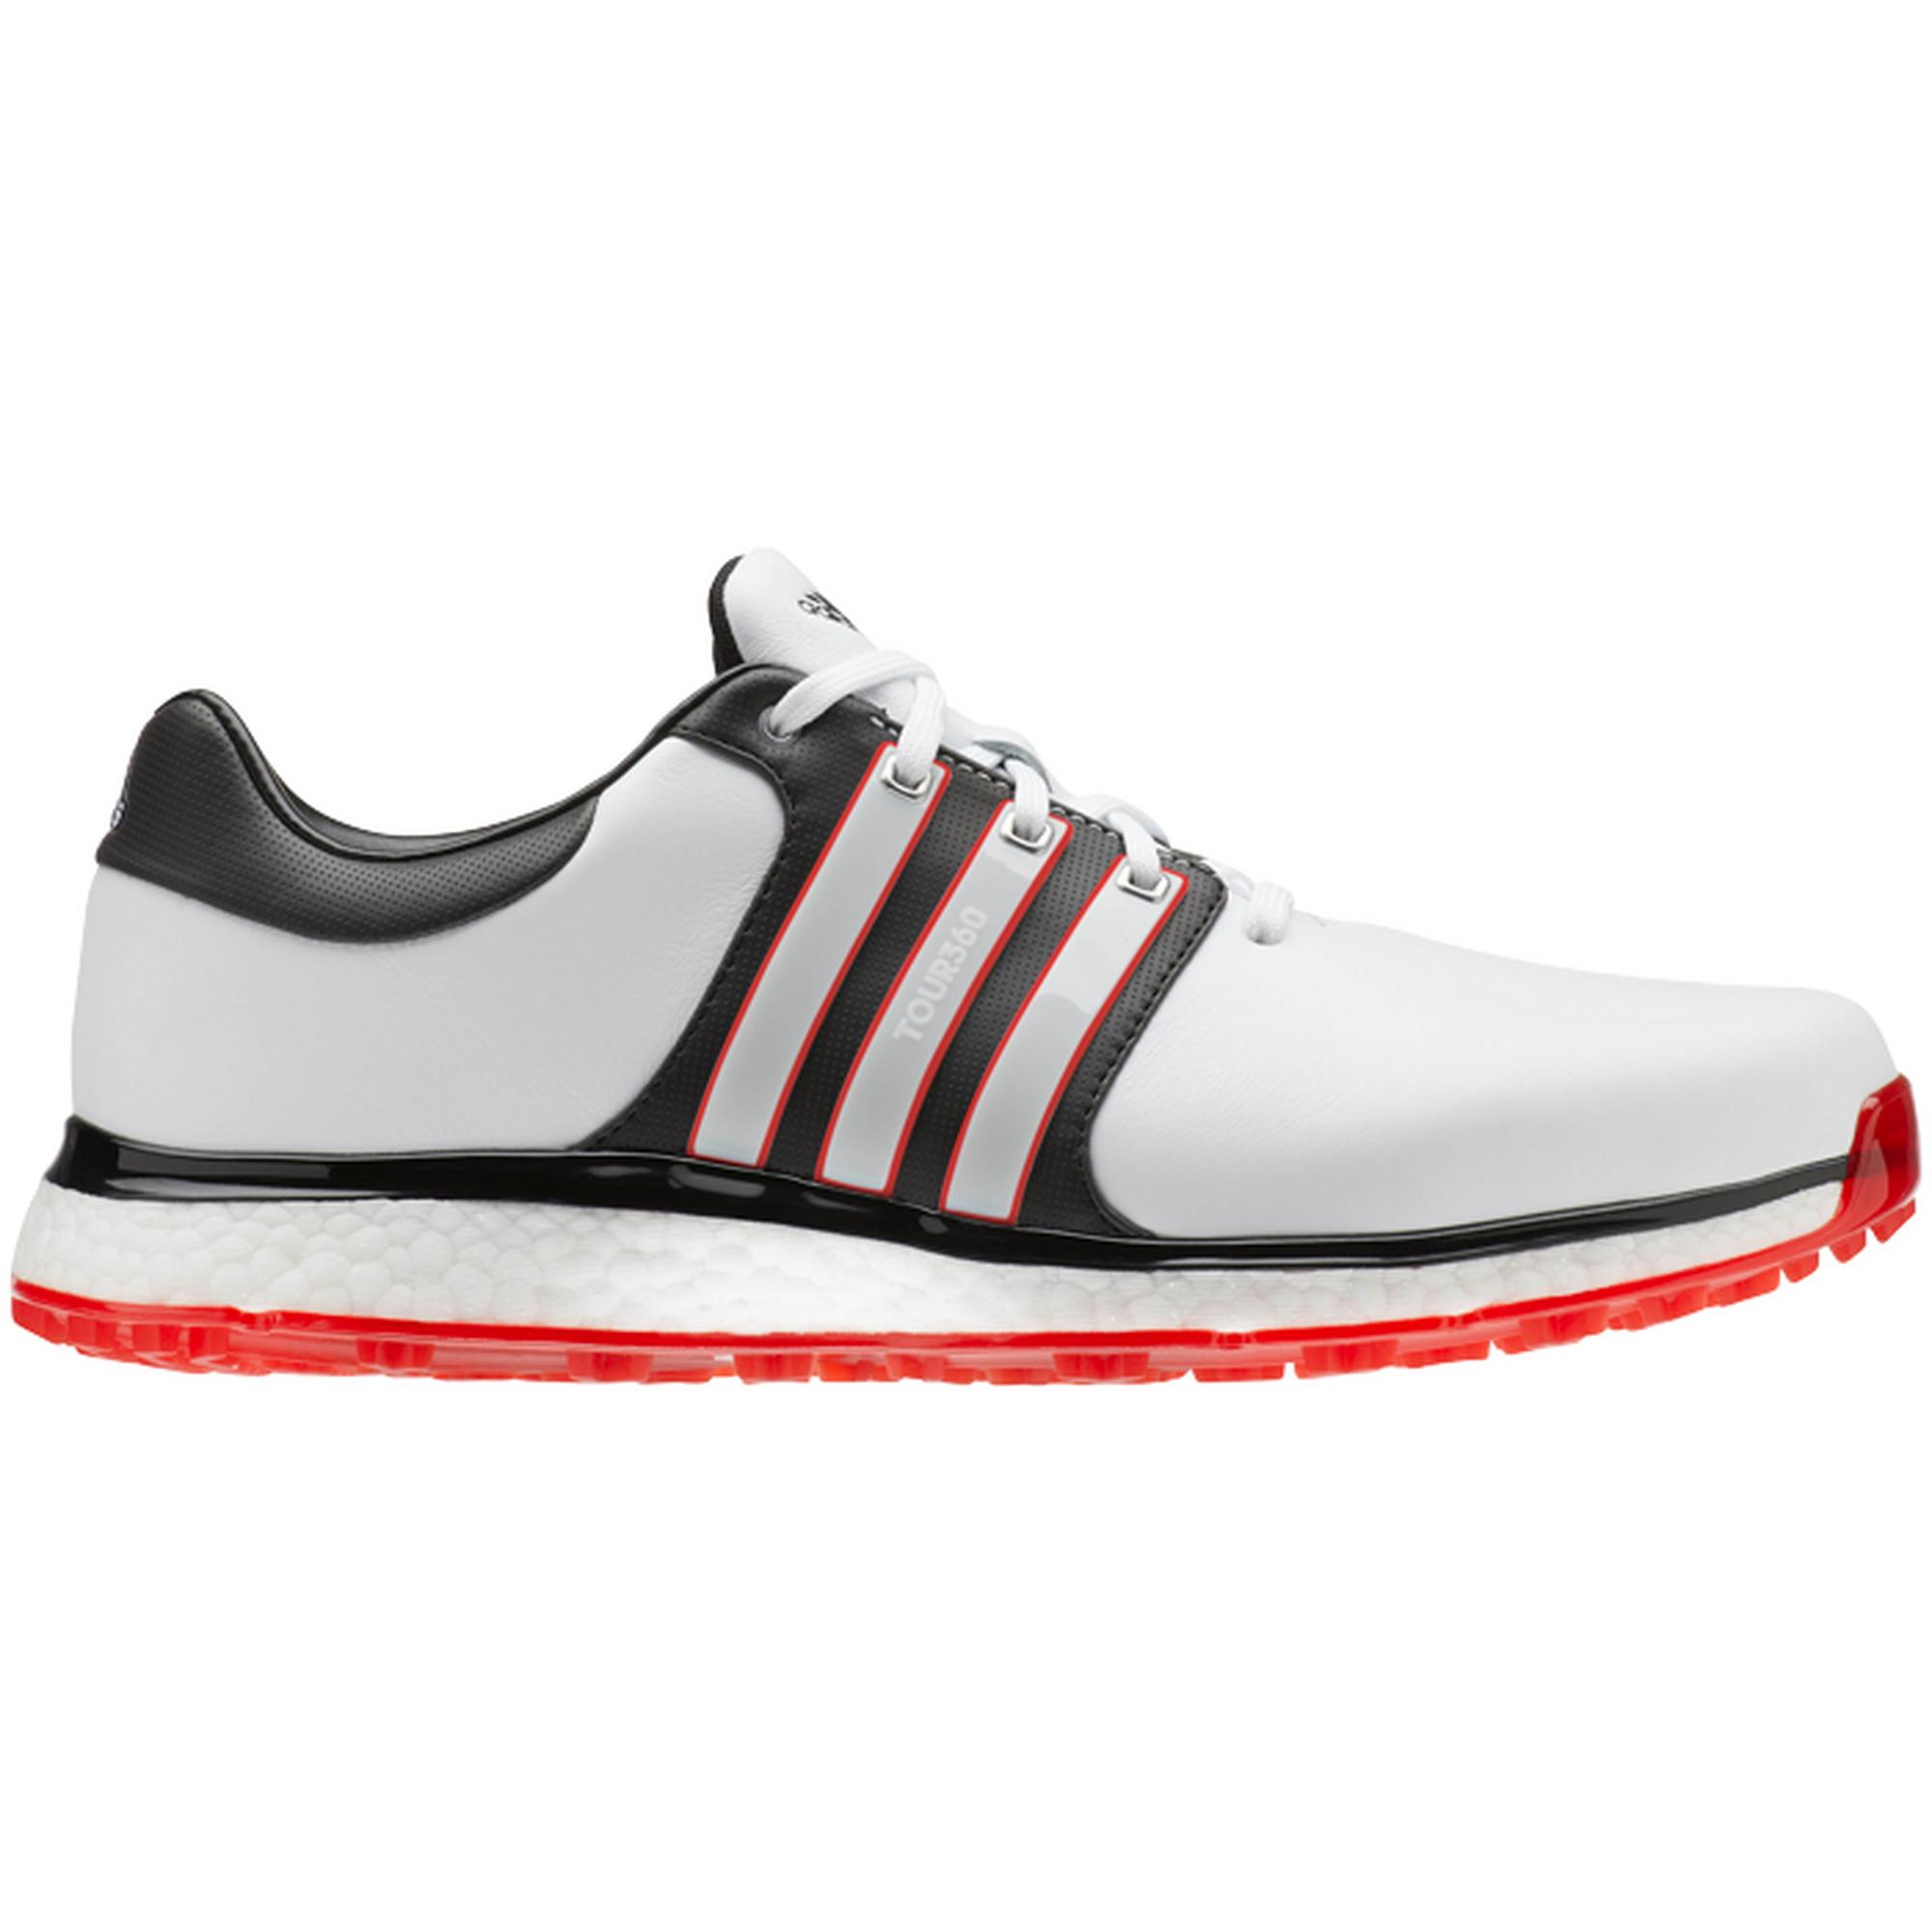 Men's Tour360 XT Spikeless Golf Shoe - WHITE/BLACK/RED